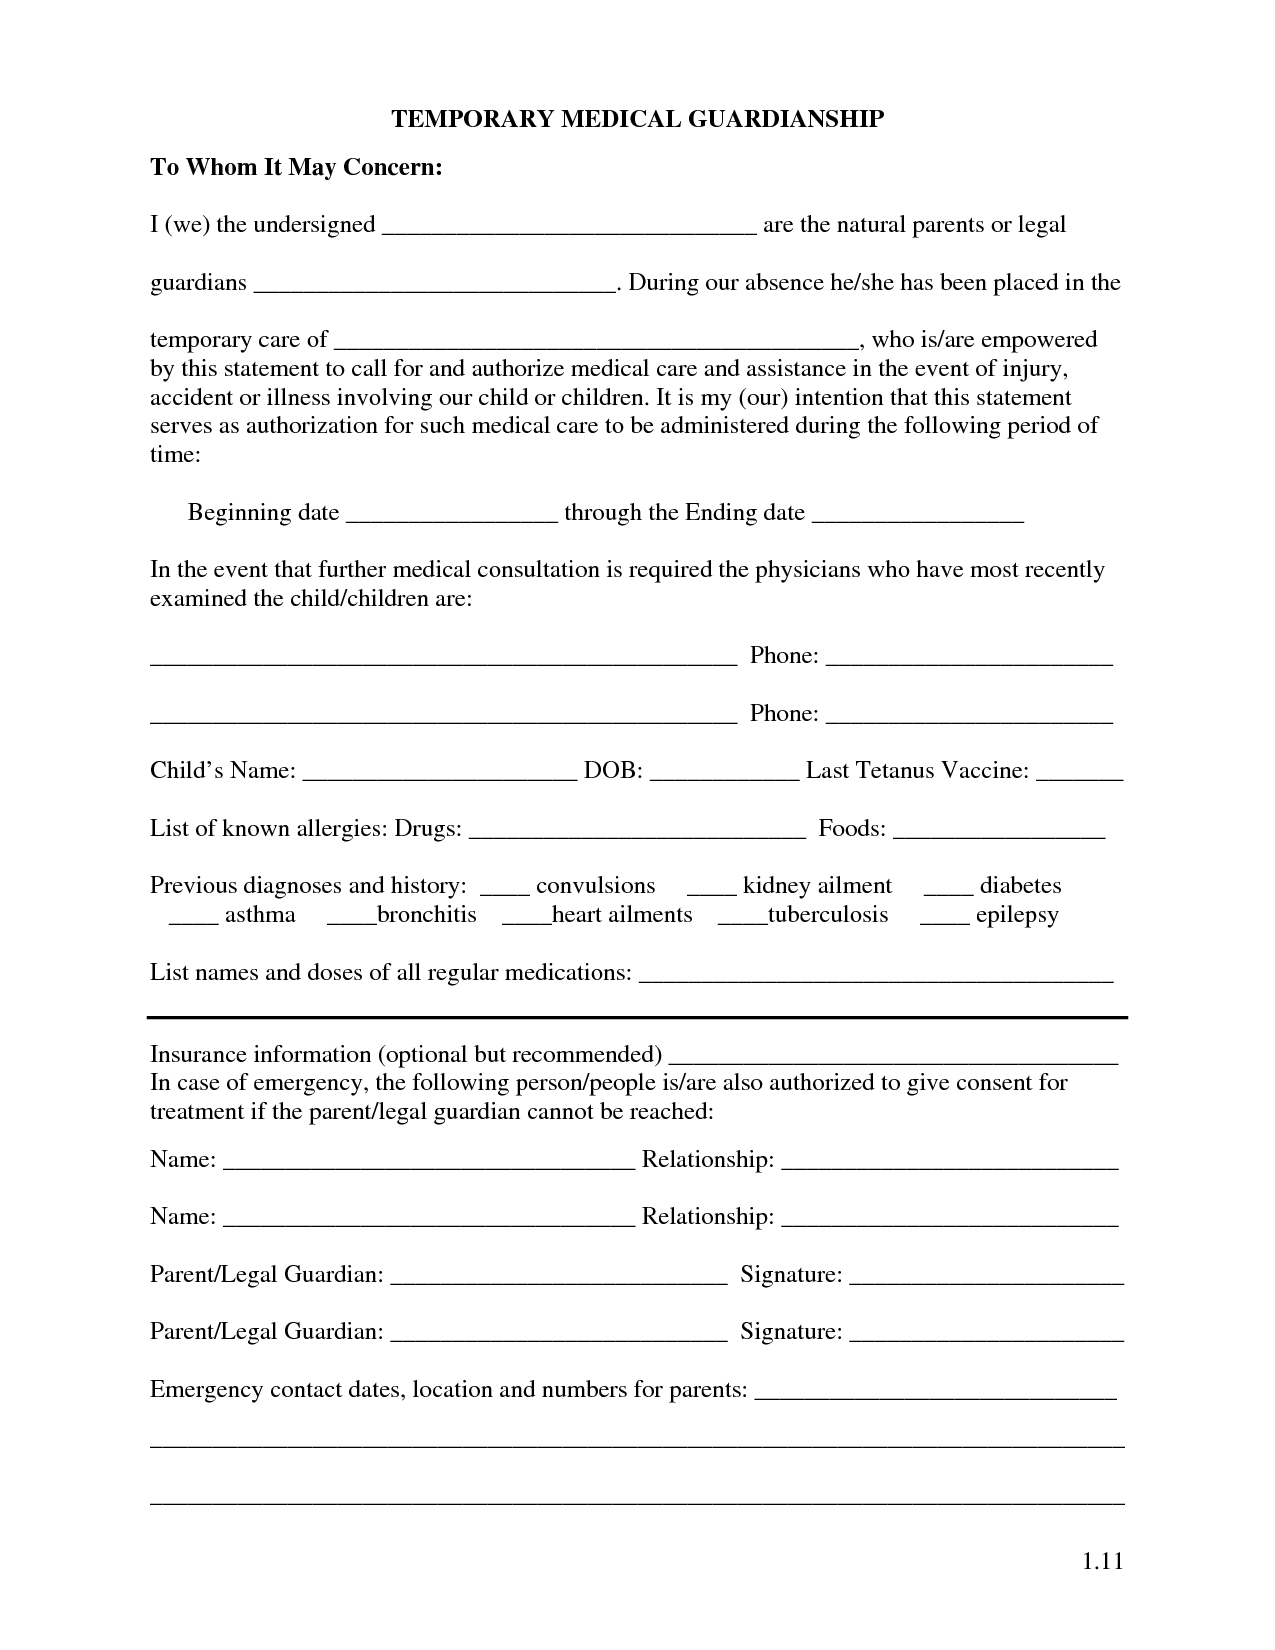 Free Printable Temporary Guardianship Forms | Forms - Free Printable Child Custody Papers